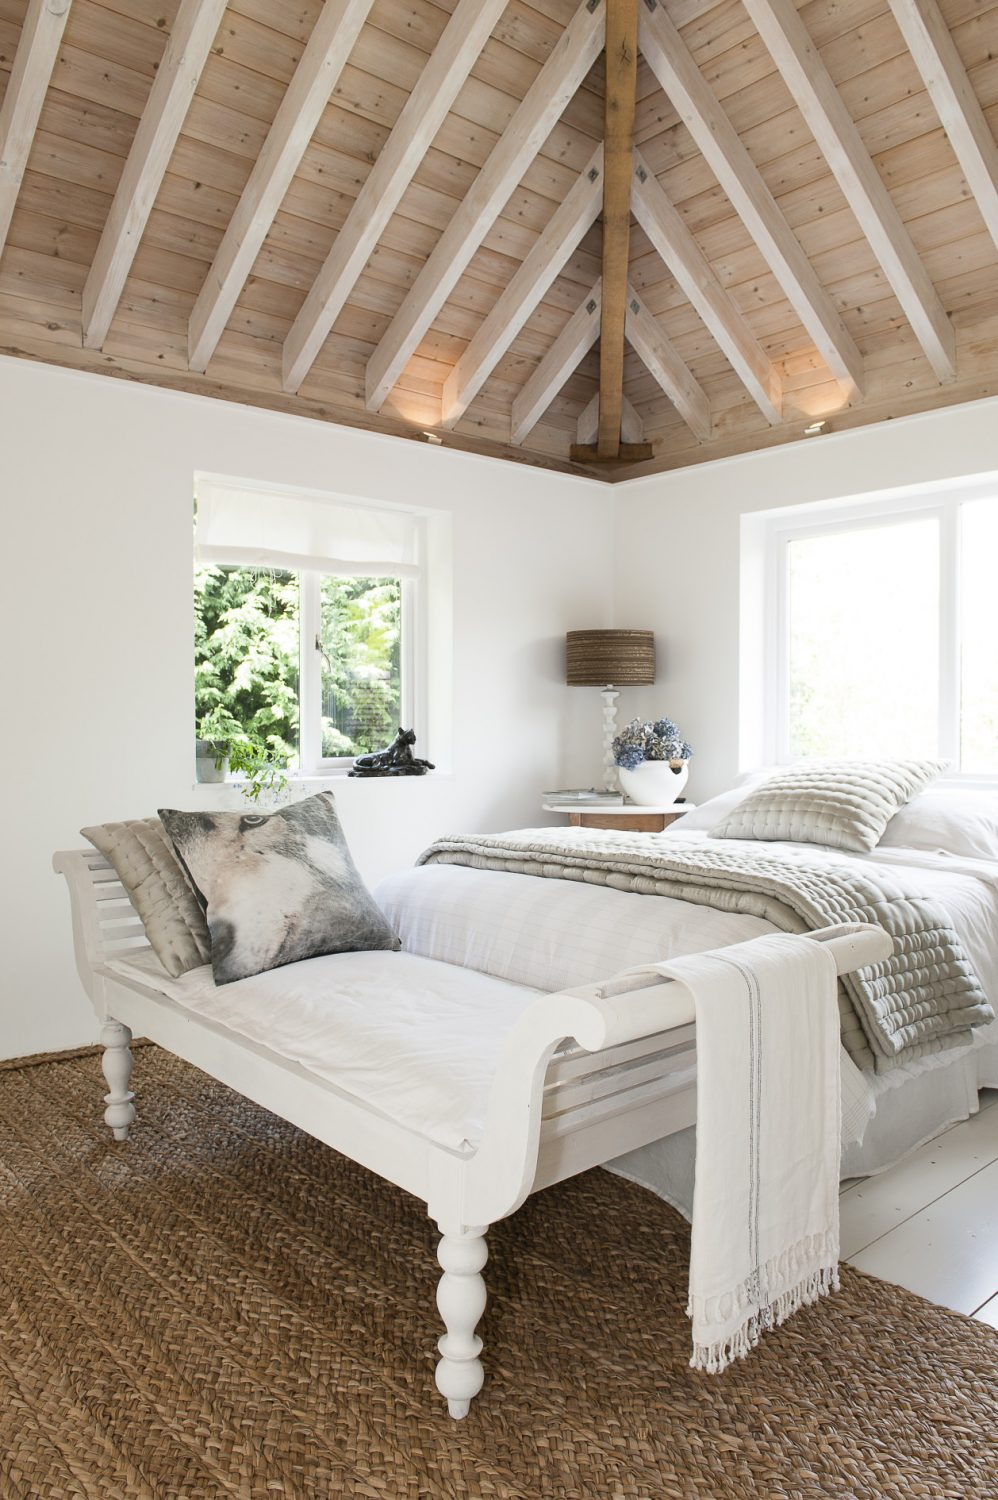 In the principal, vaulted guest room the soaring ceiling timbers have been treated with a lye and soap wash